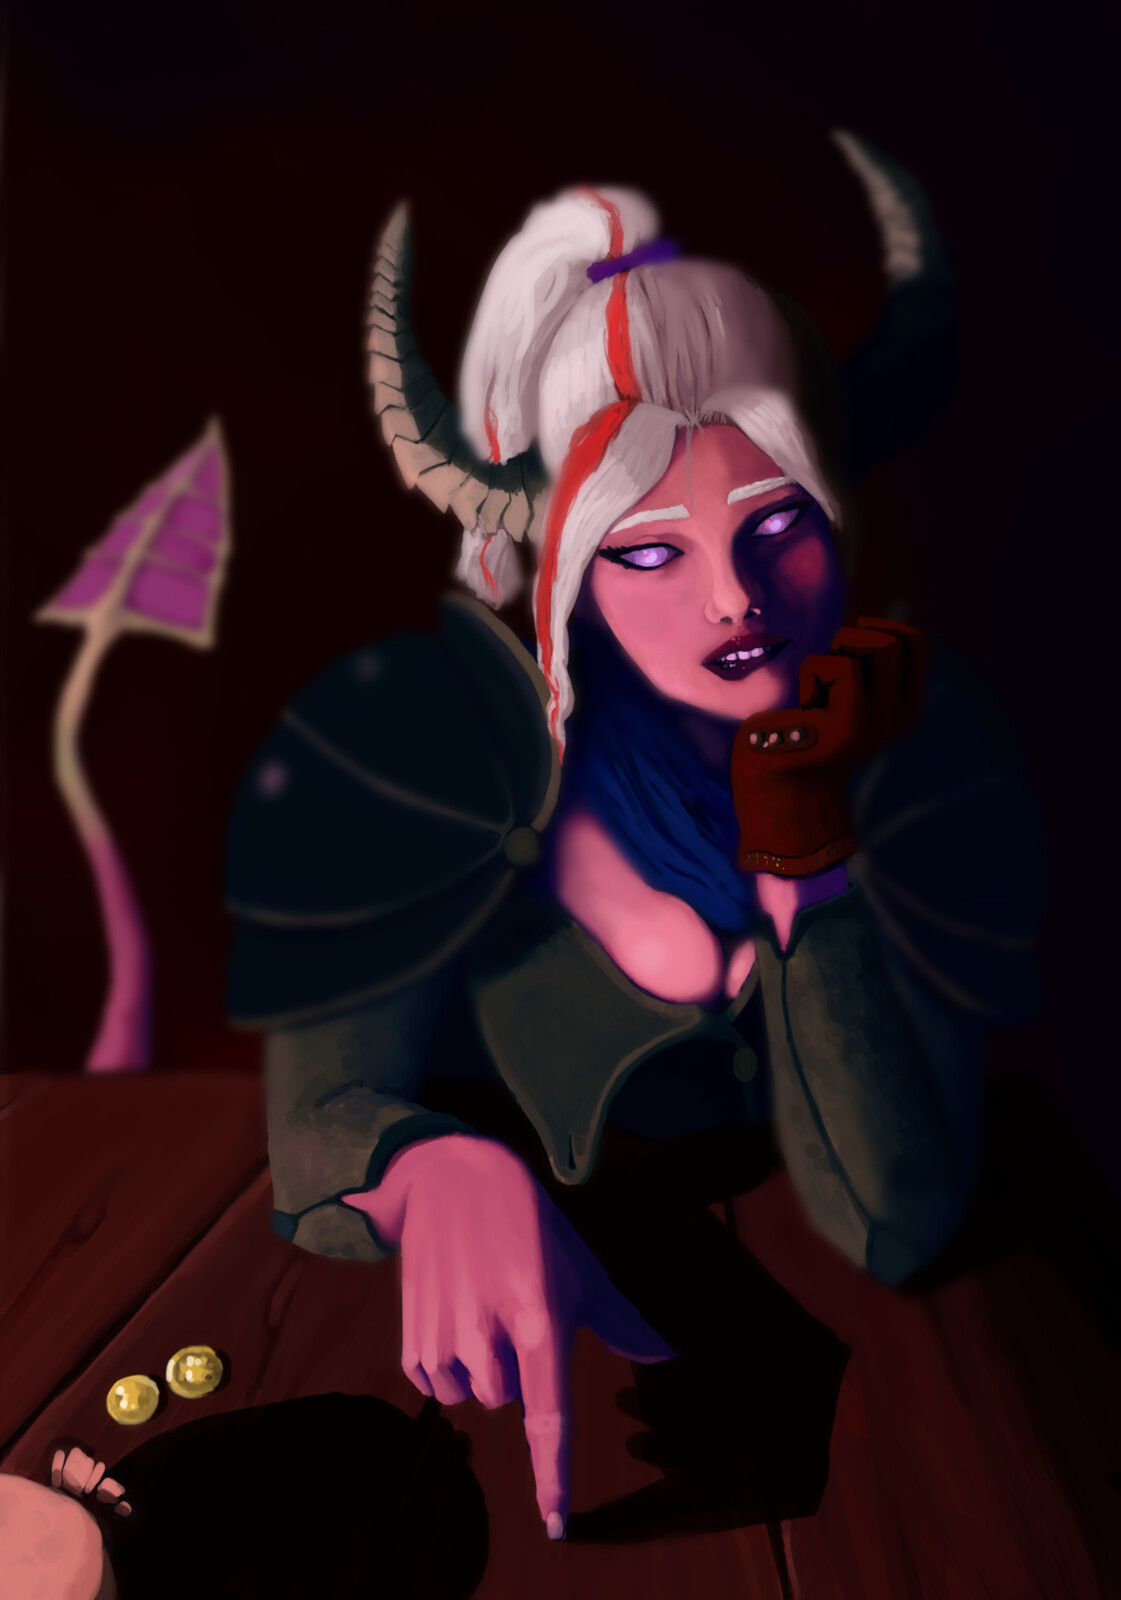 Tiefling commission for a friend's DND character.